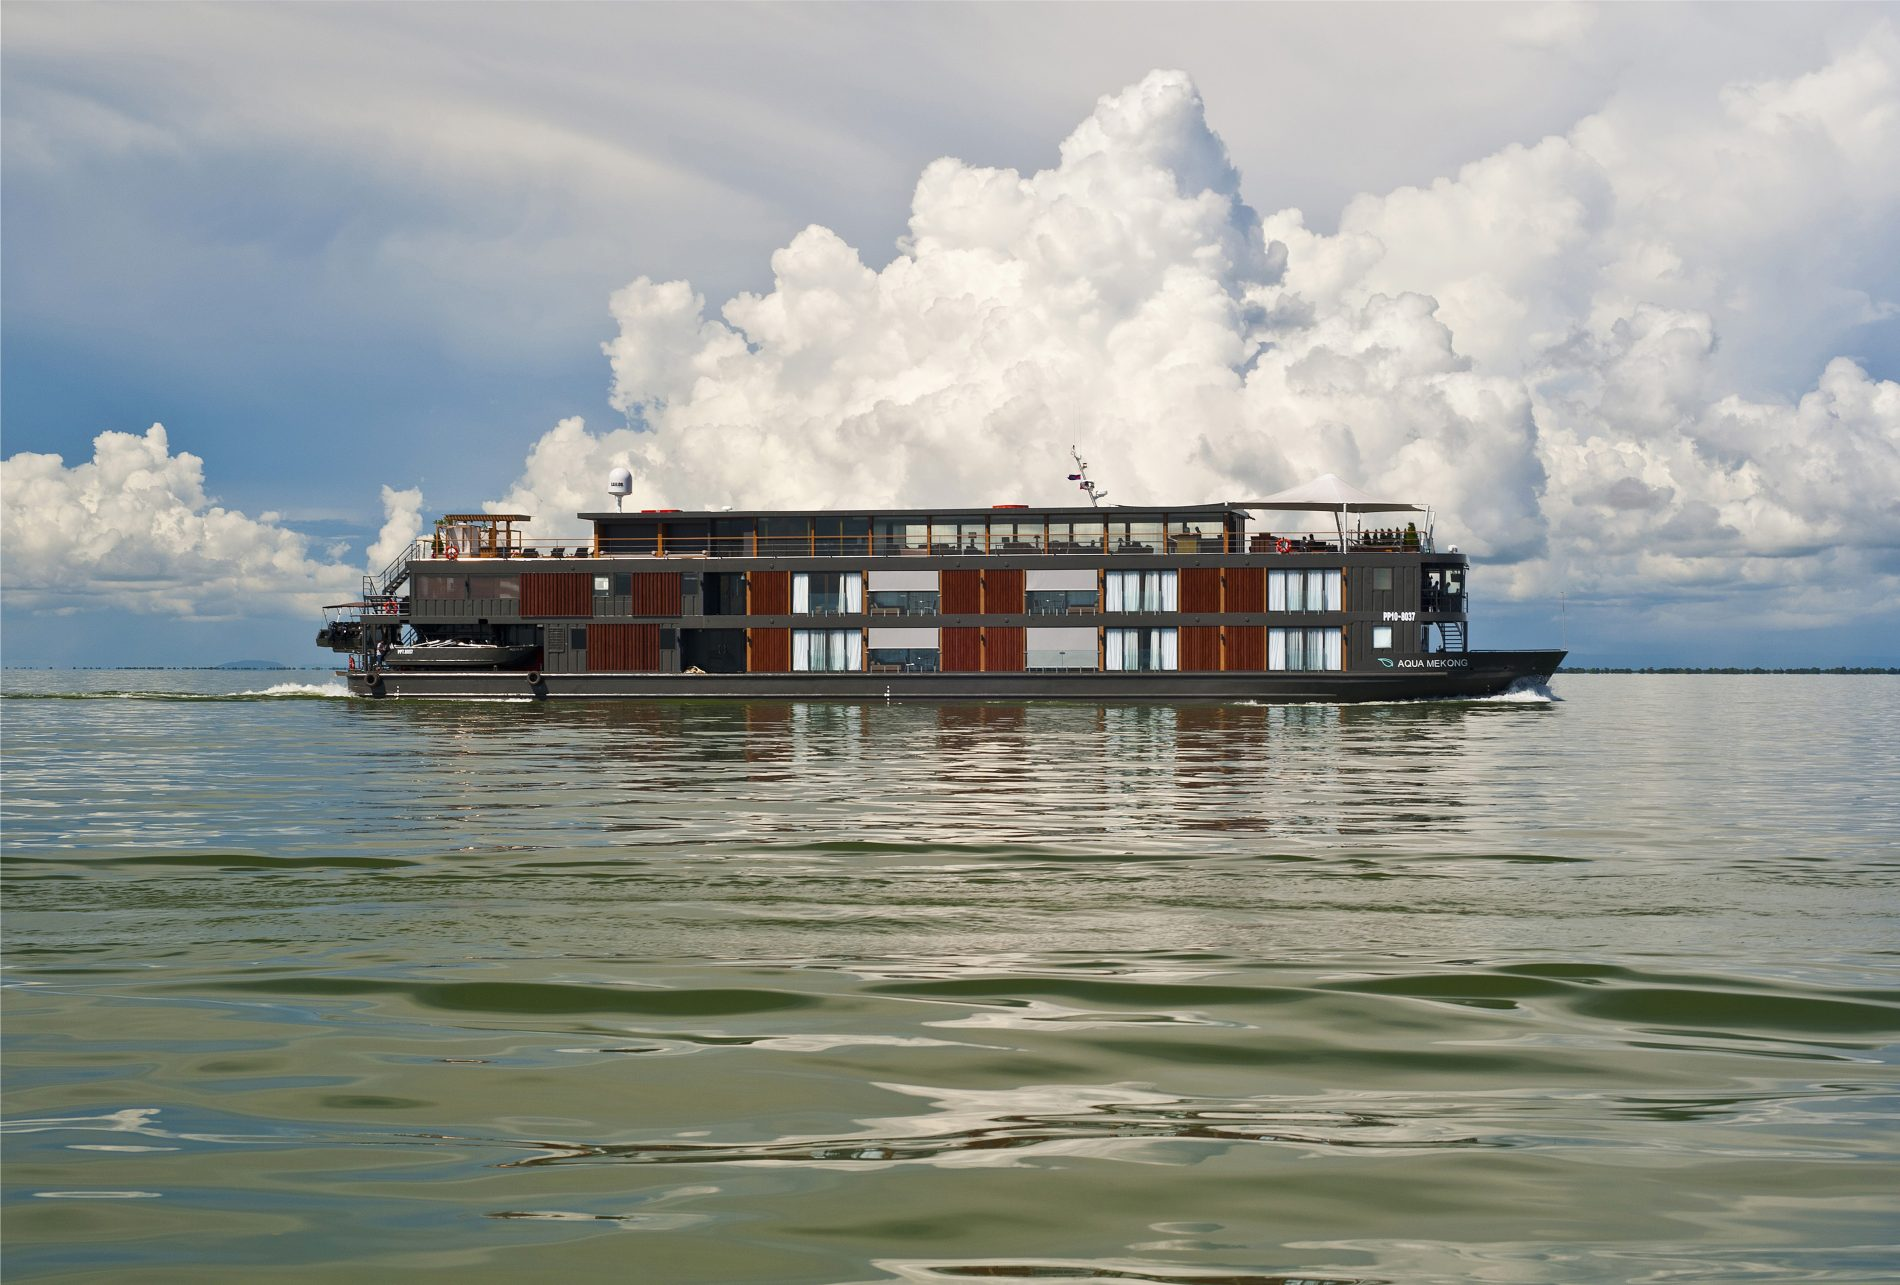 Aqua Mekong Exterior View - High Resolution (4)